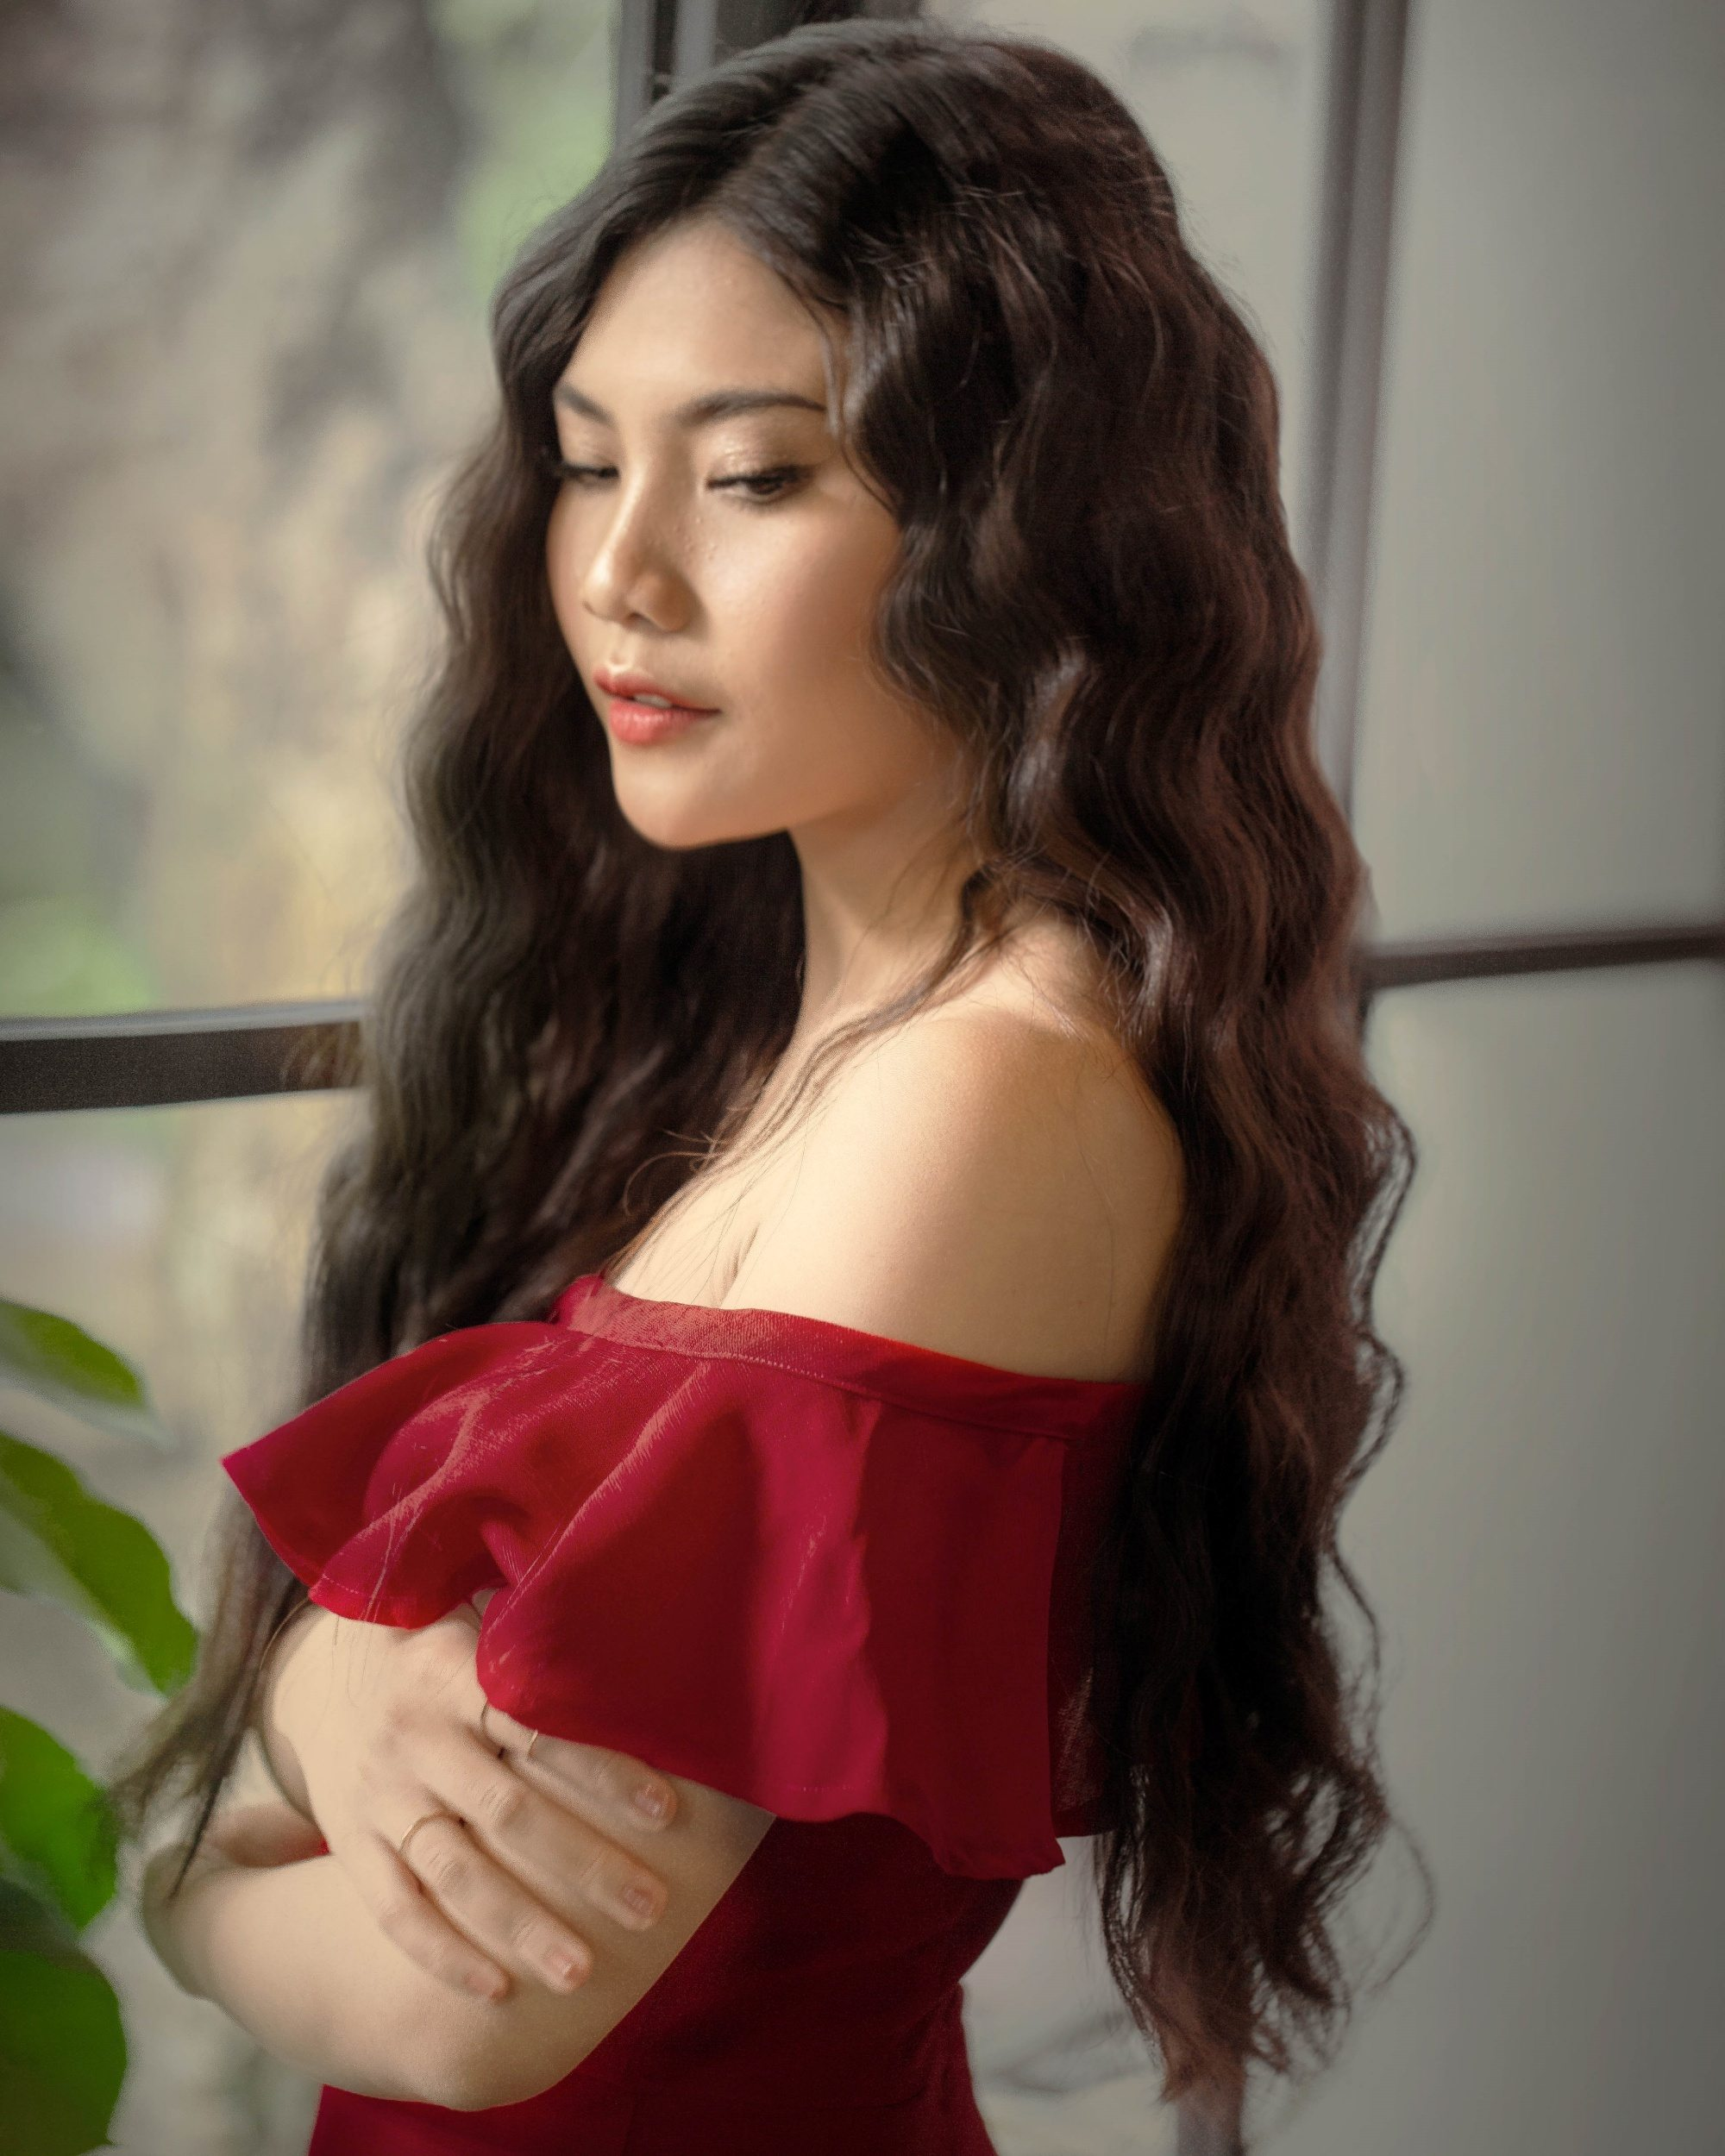 Asian woman with long black asteria hair wearing an off-shoulder red dress